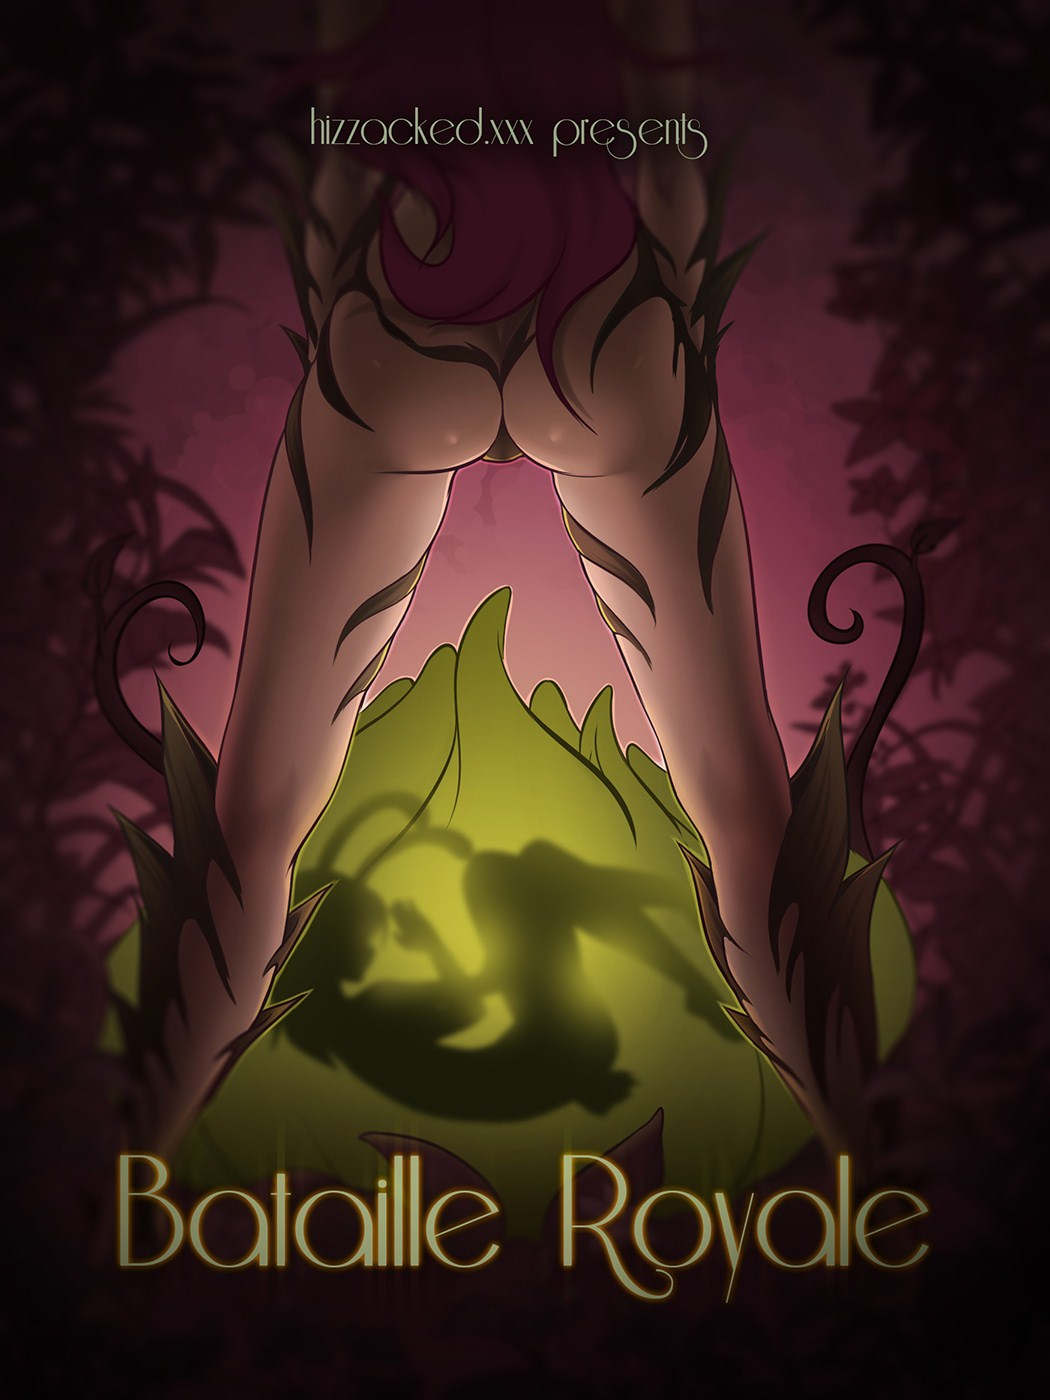 [Hizzacked] Bataille Royale (League of Legends) image 01